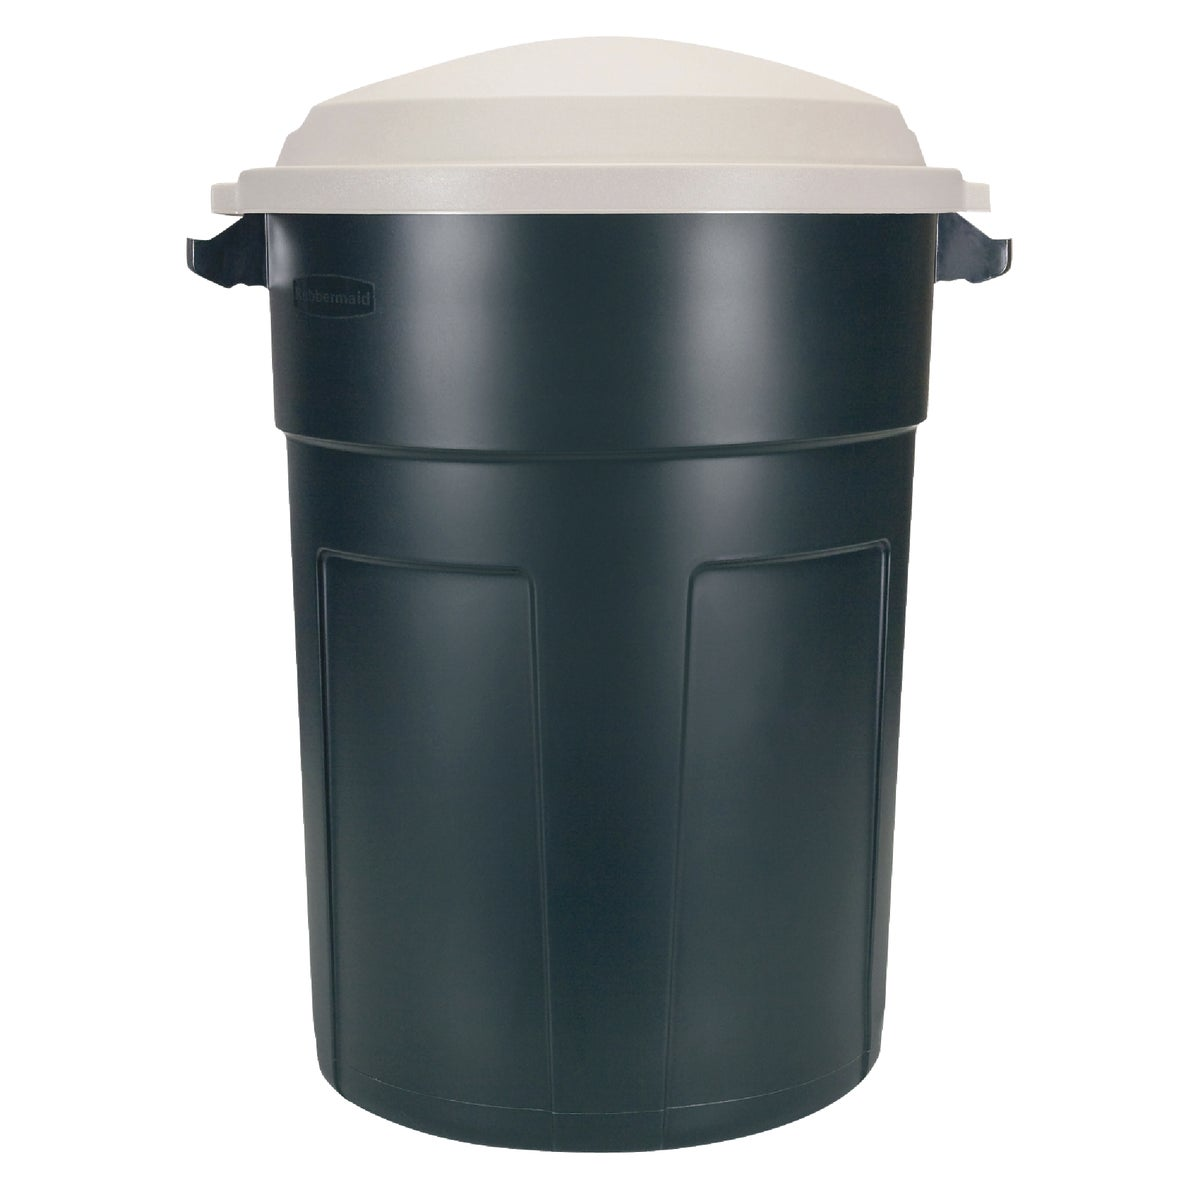 32GAL GREEN TRASH CAN